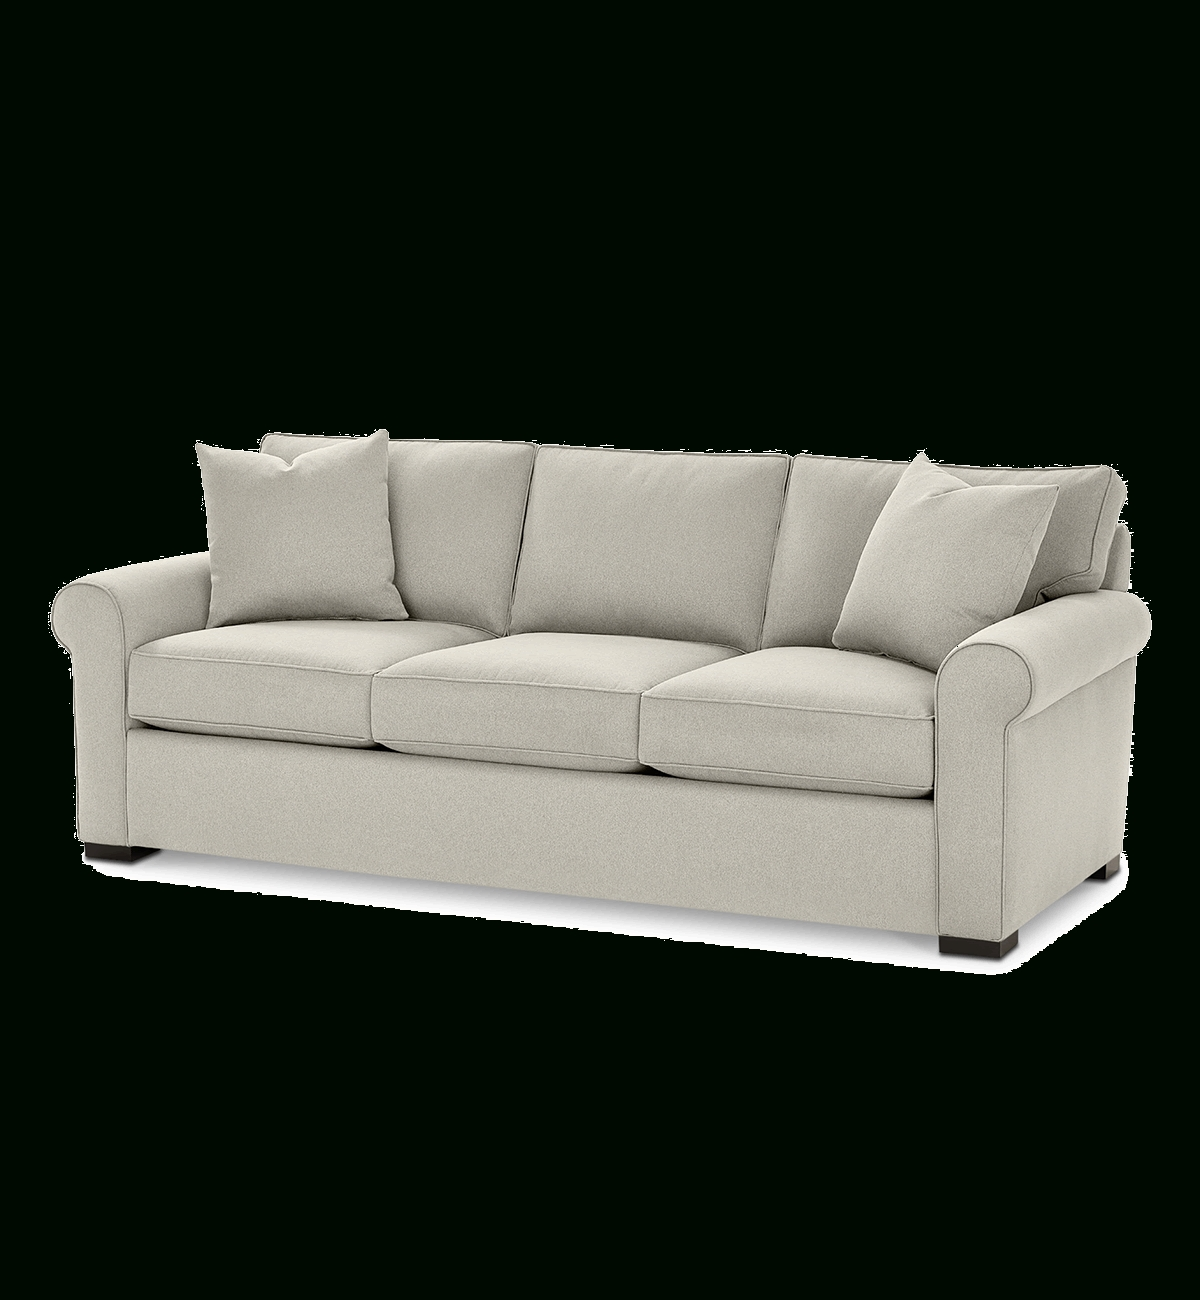 Most Recently Released Macys Sectional Sofas Within Sectional Sofas Couches And Sofas – Macy's (Gallery 19 of 20)